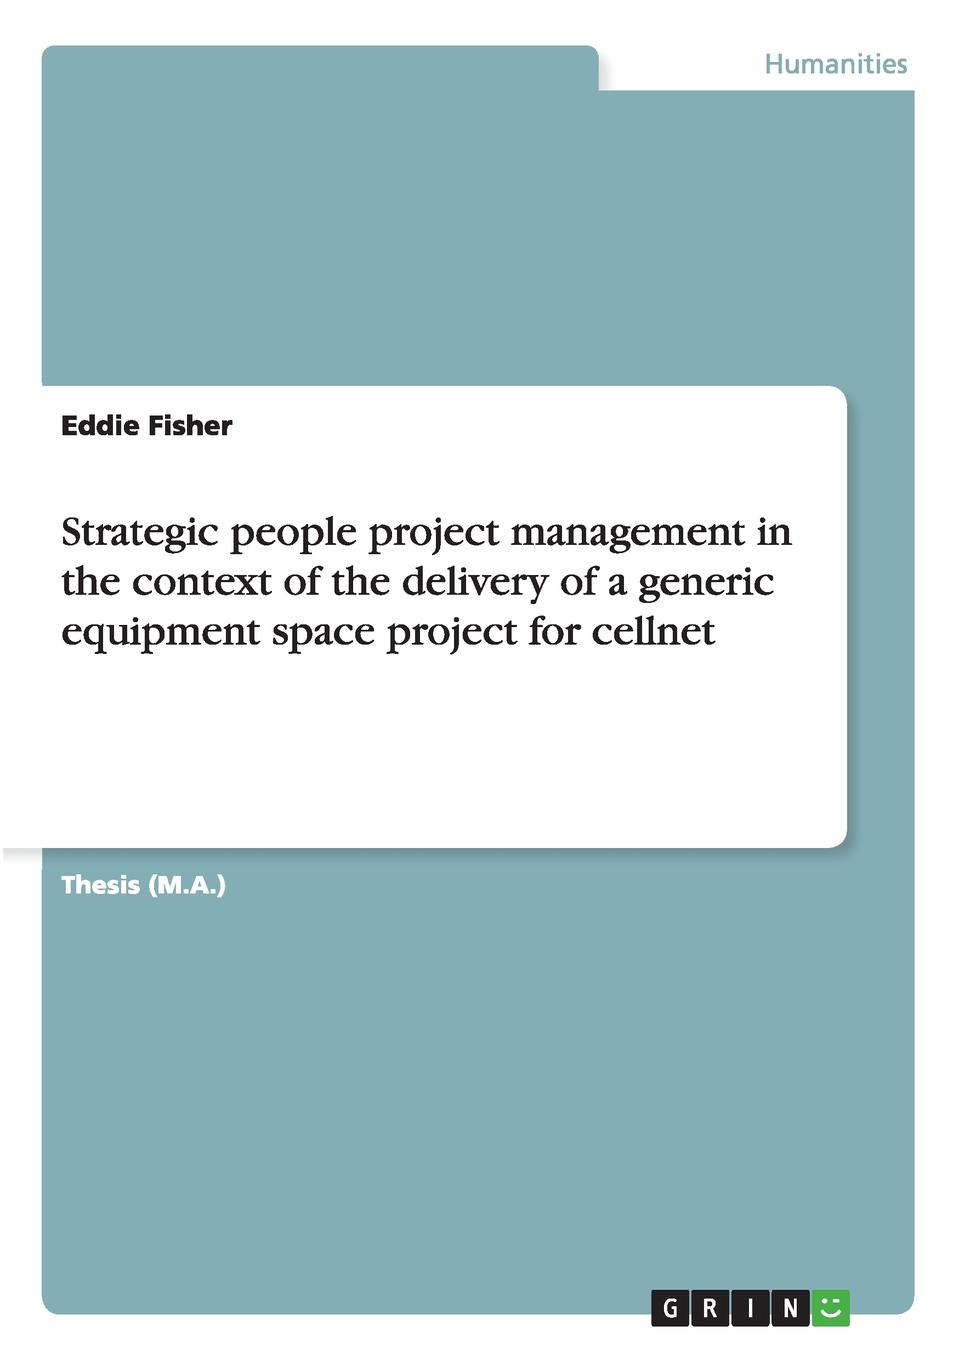 Eddie Fisher Strategic people project management in the context of the delivery of a generic equipment space project for cellnet dragan milosevic z project management toolbox tools and techniques for the practicing project manager